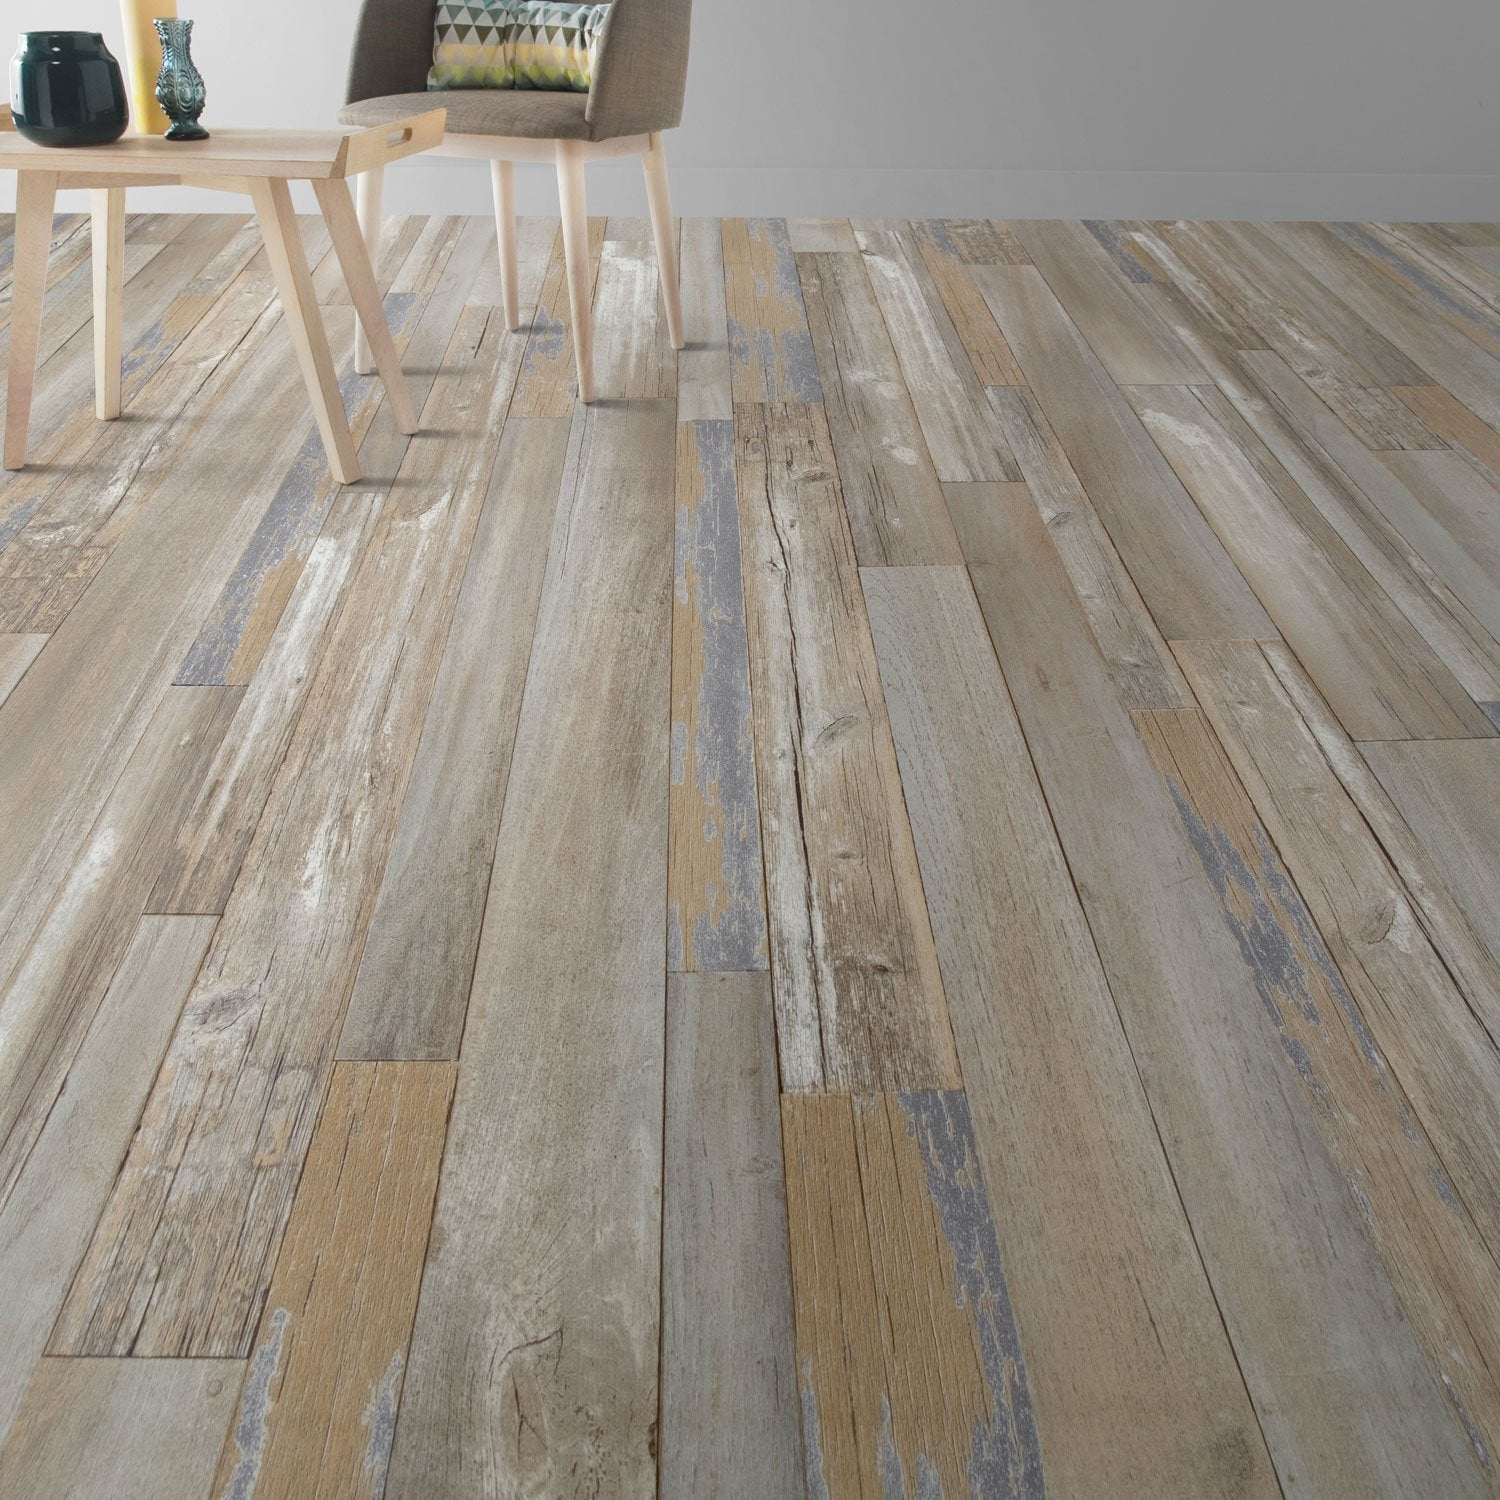 Sol pvc bleu harbor gerflor texline l 4 m leroy merlin - Dalle clipsable leroy merlin ...